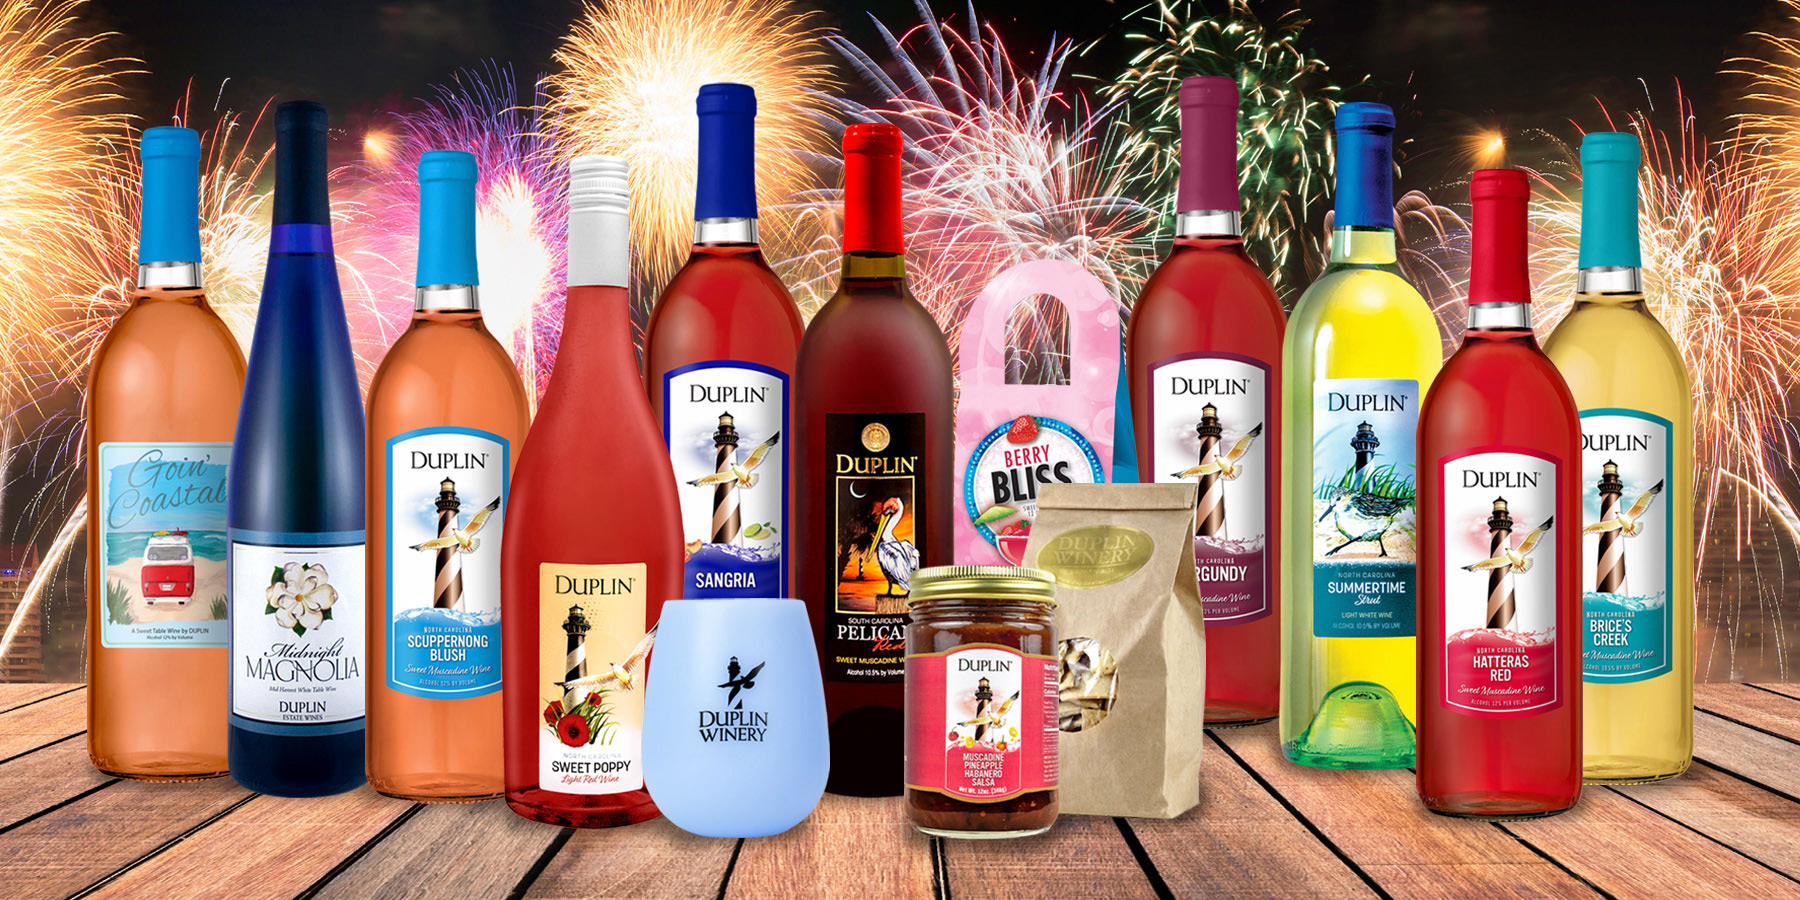 This 4th of July Wine Tasting Kit celebrates America's first wines.